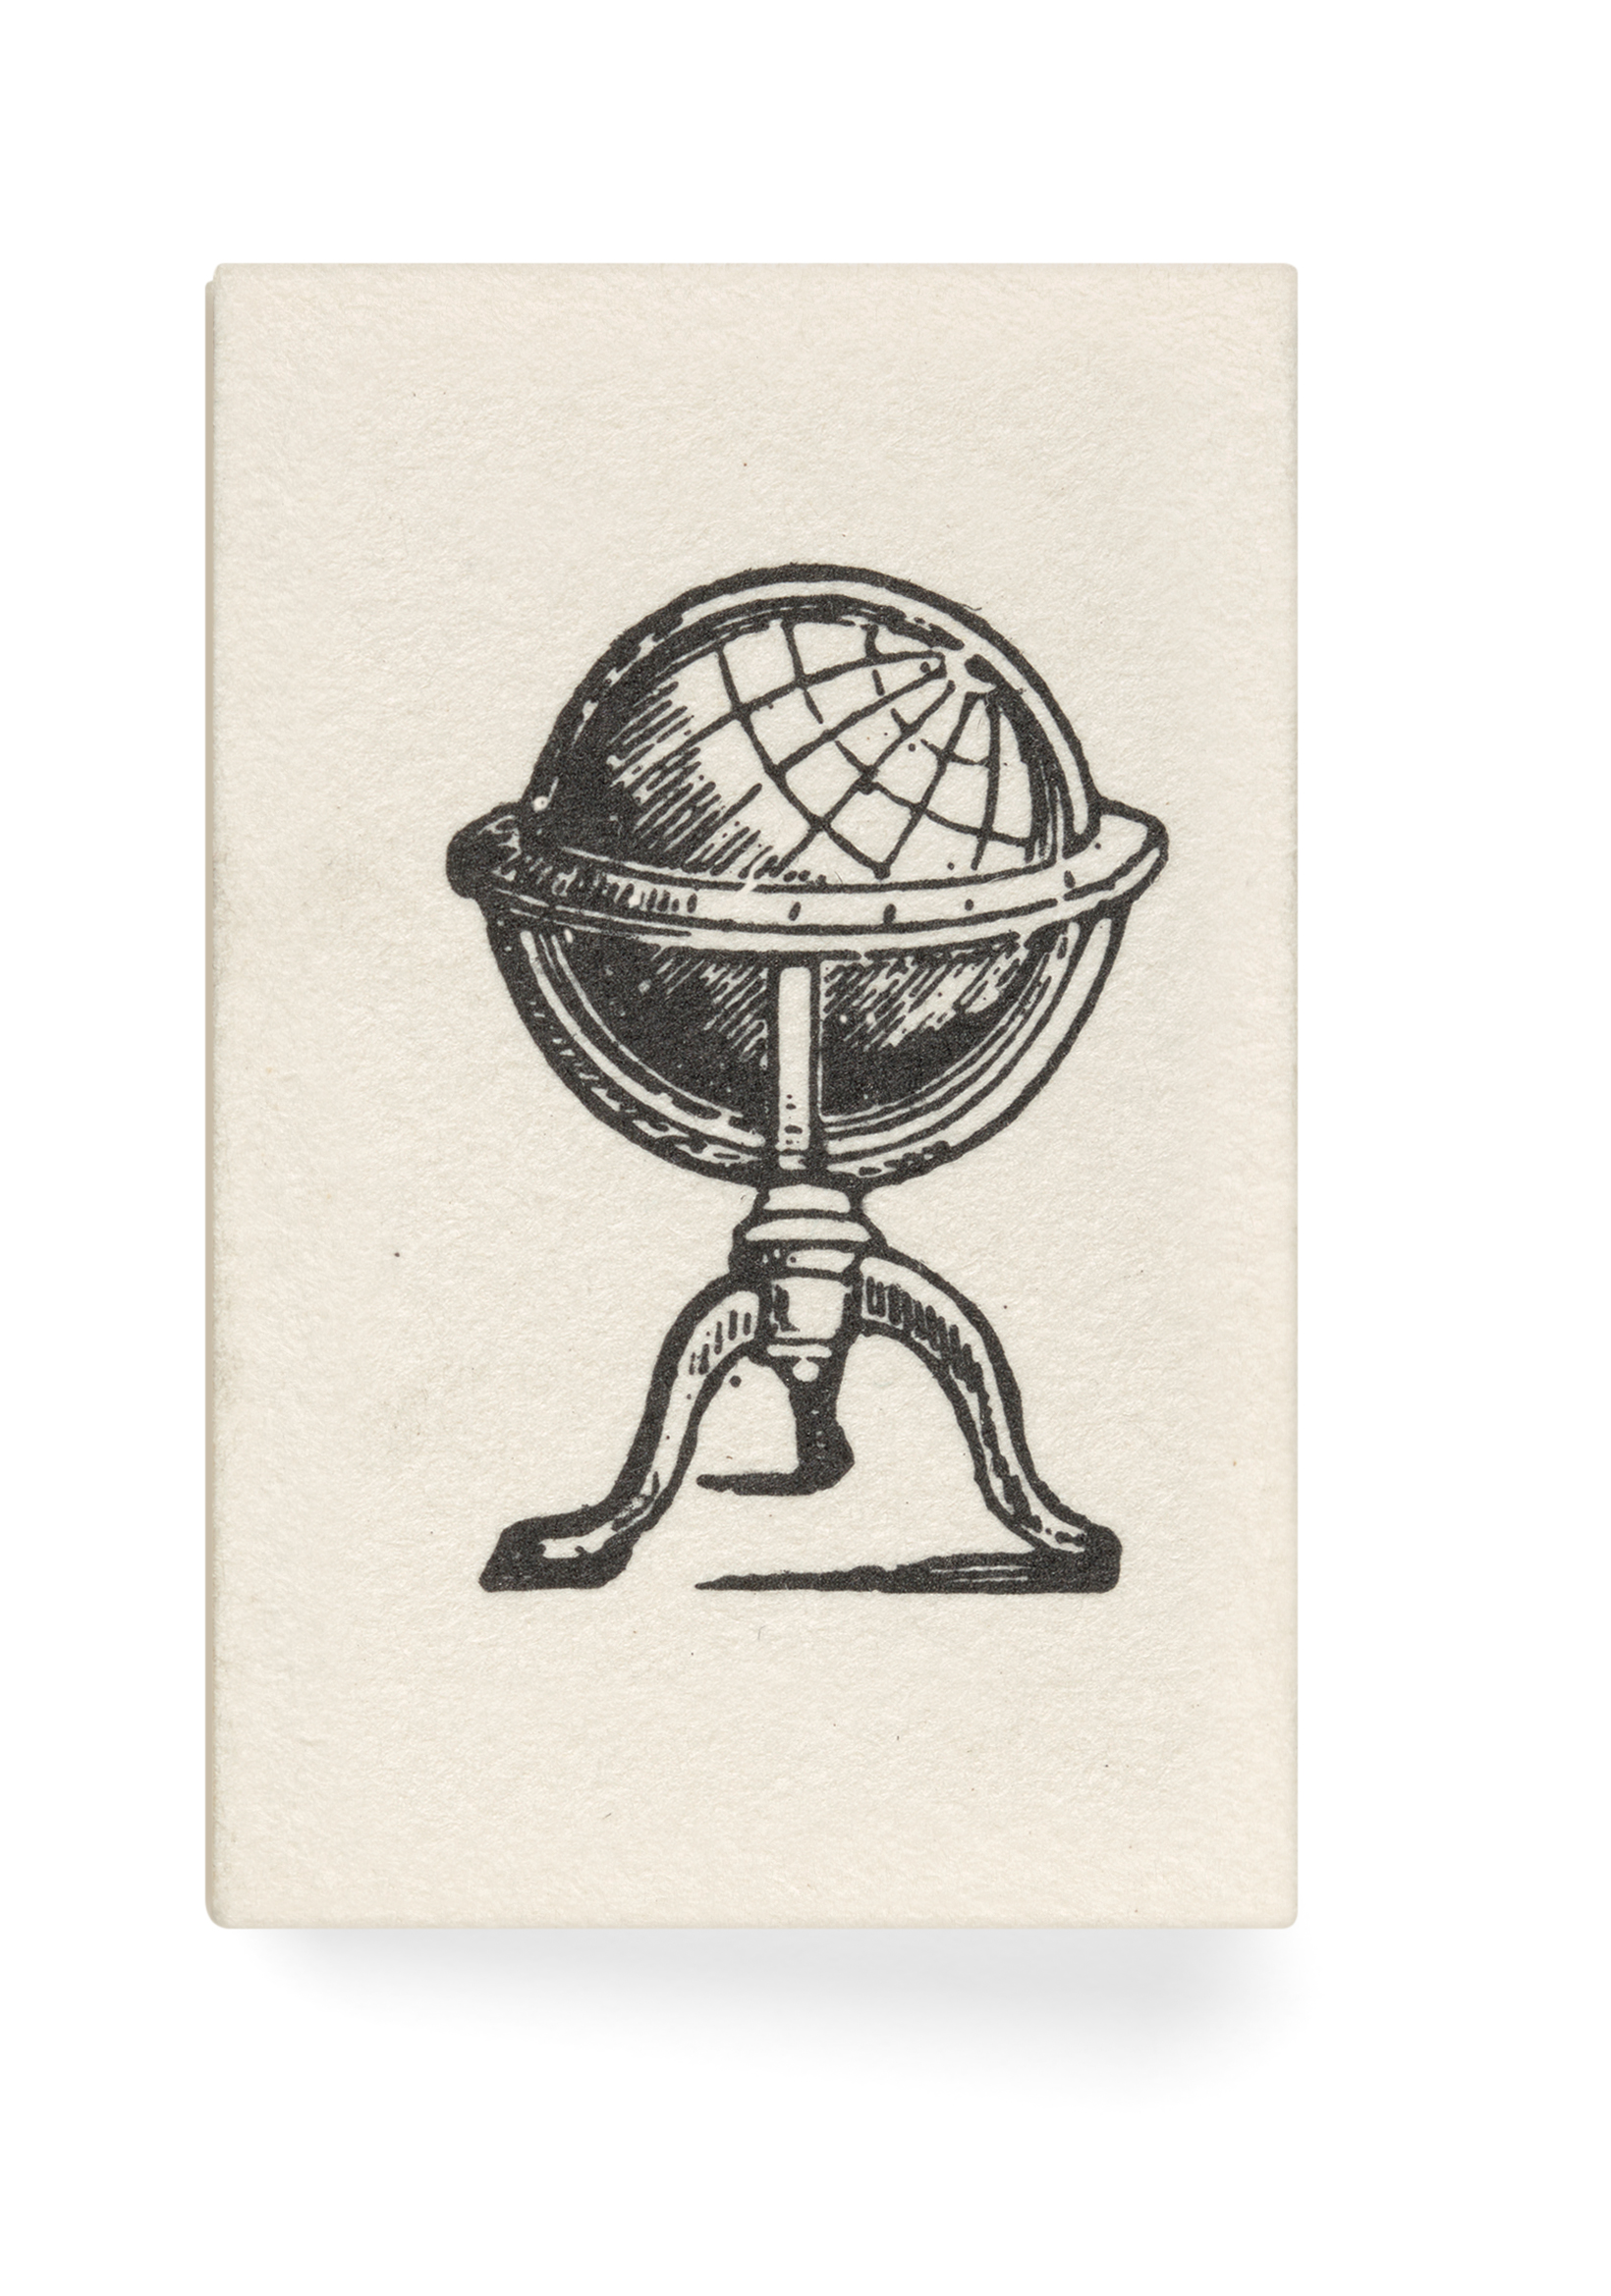 Marcel Broodthaers. Atlas. 1975. Offset lithograph. © 2016 Artists Rights Society (ARS), New York / SABAM, Brussels.